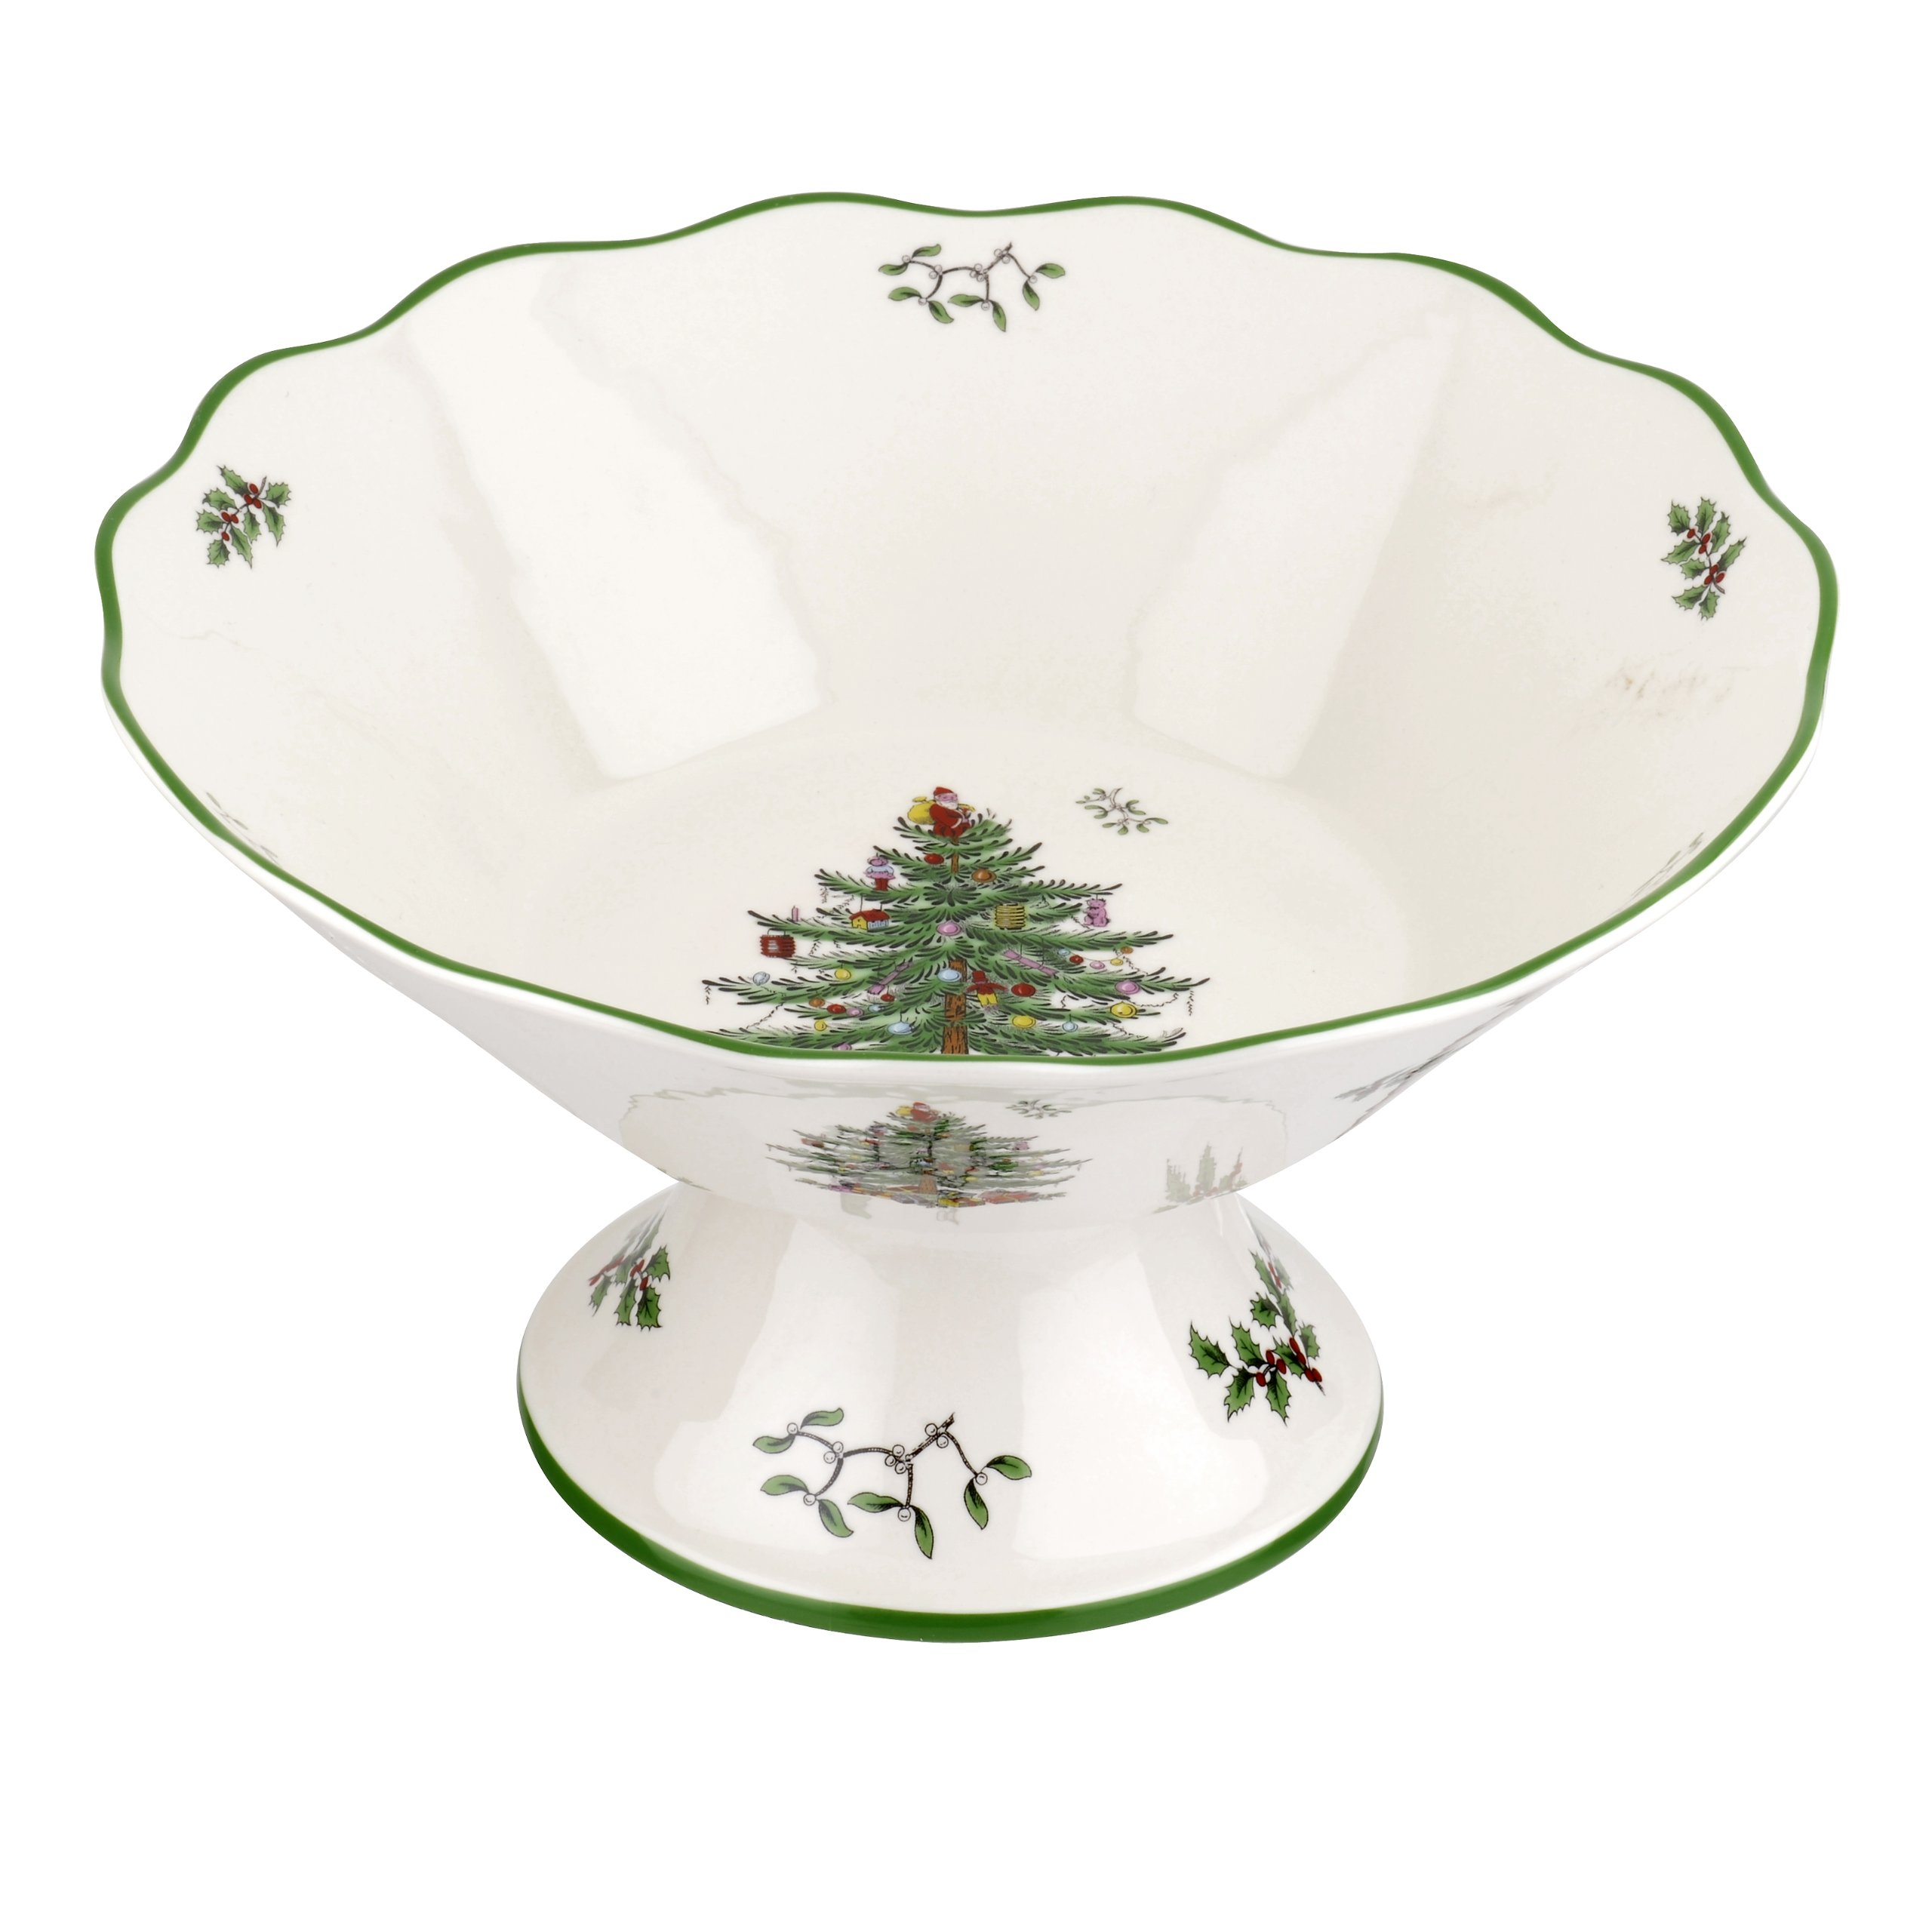 Spode Christmas Tree 75th Anniversary Footed Compote Serving Bowl